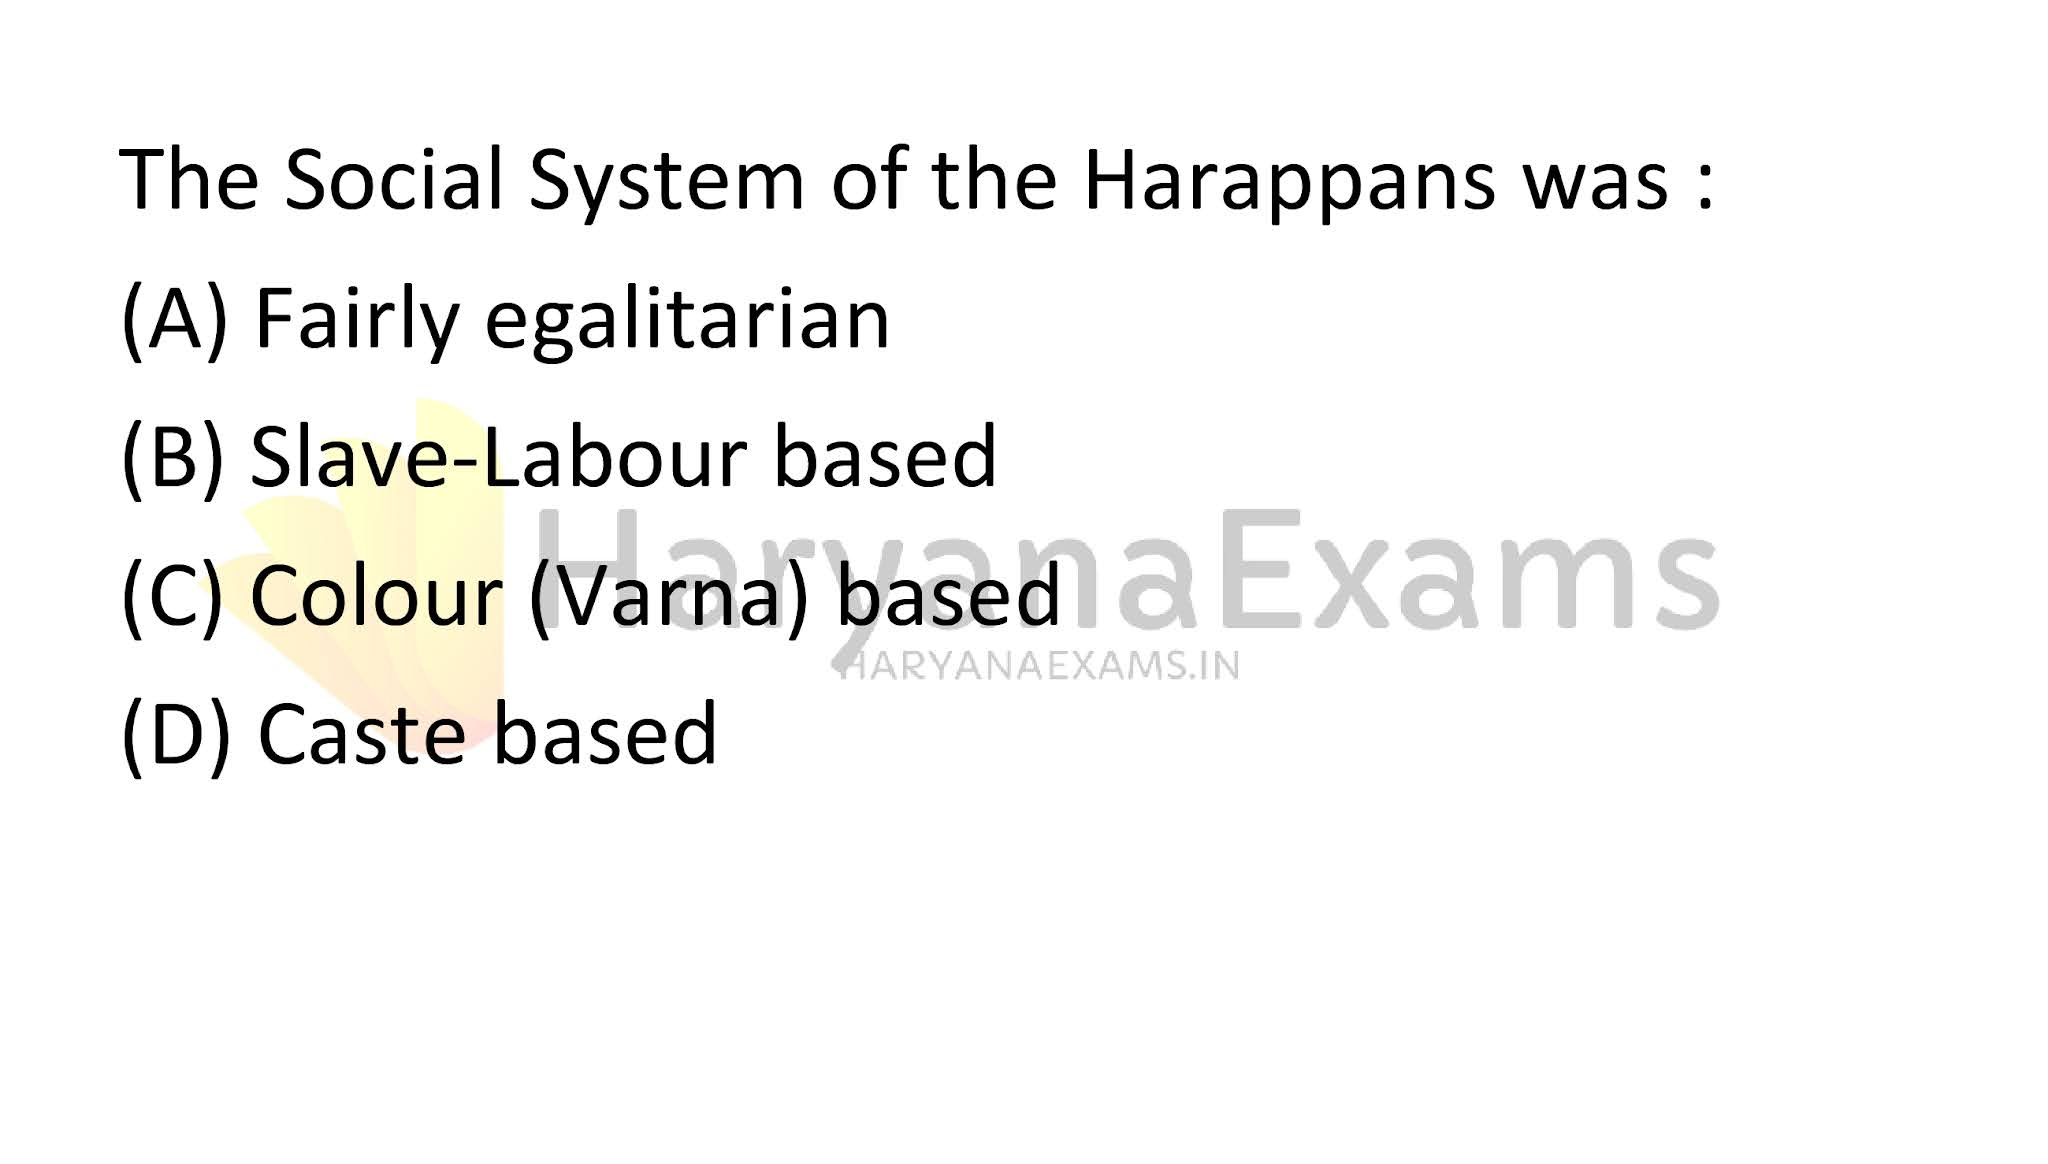 The Social System of the Harap pans was :